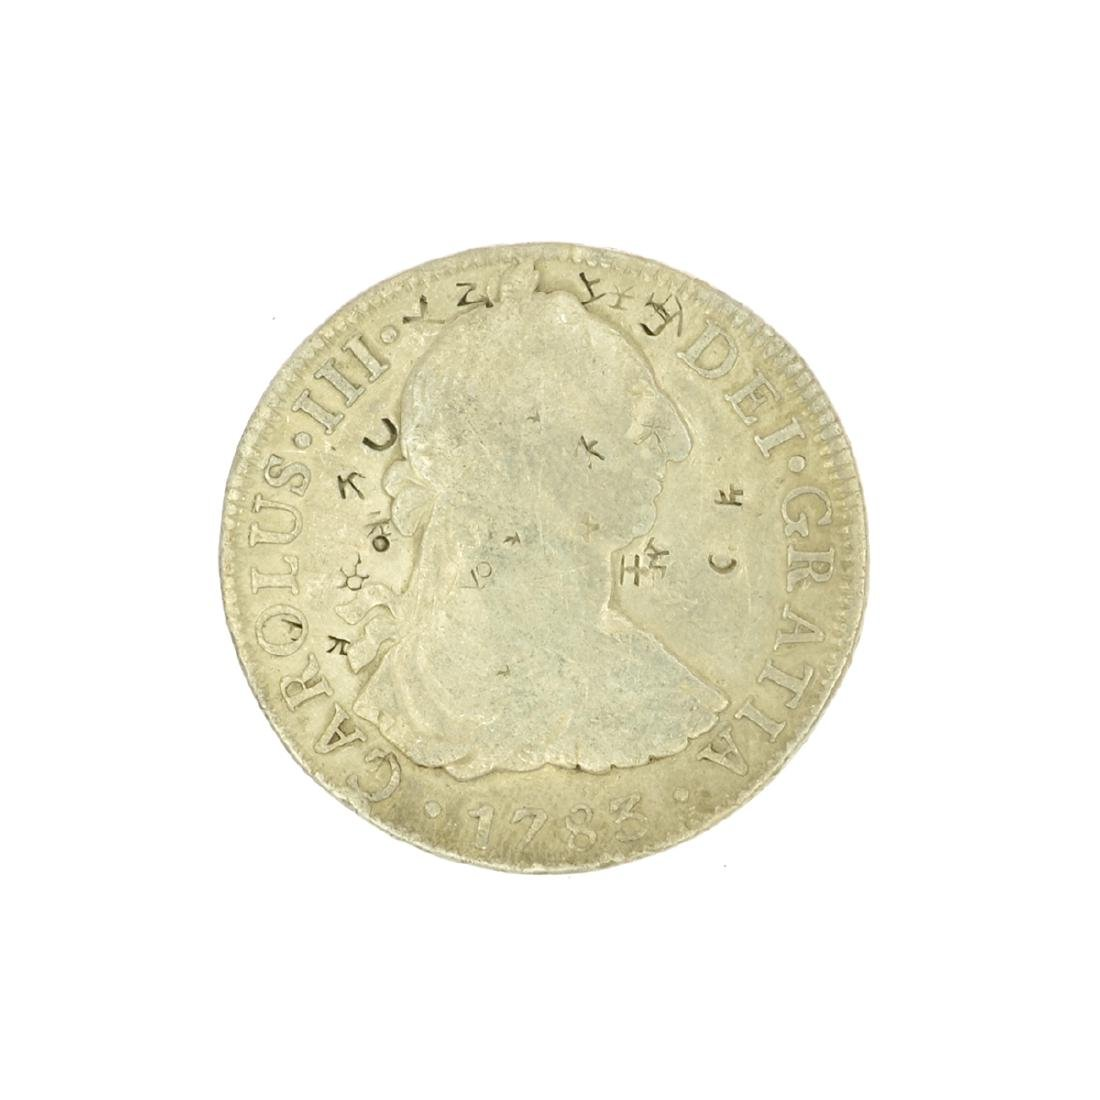 Extremely Rare Early Date 1783 Portrait Reales Very